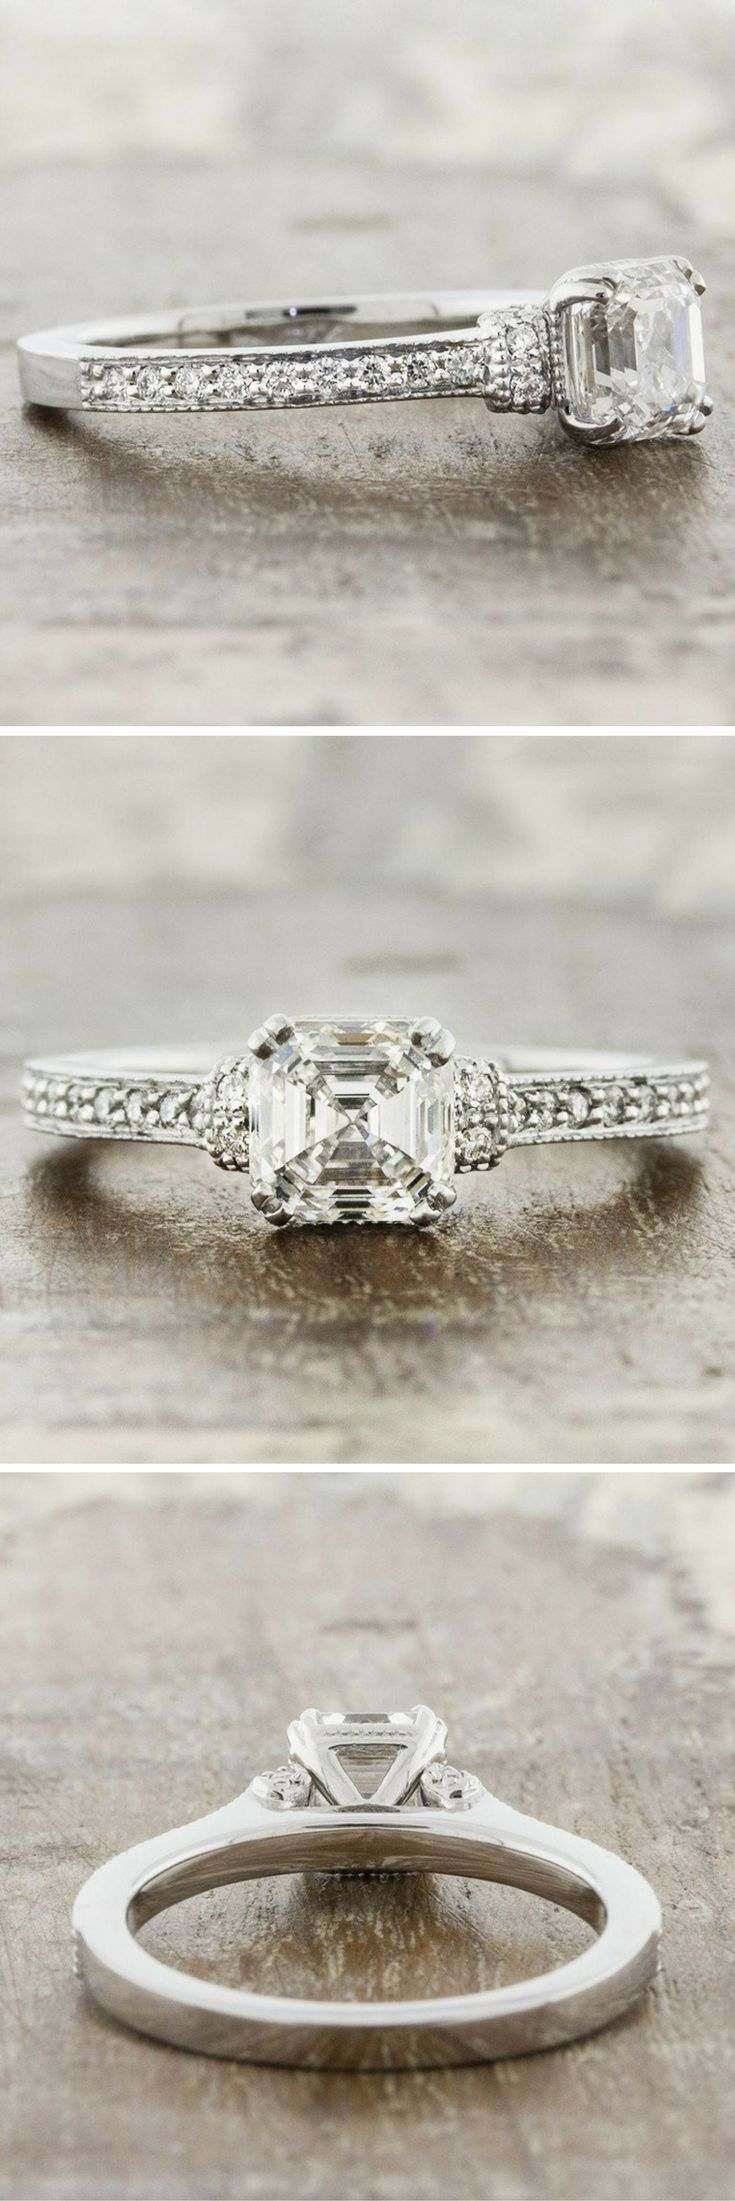 Jennie is an asscher cut three stone diamond engagement ring, with a hand engraved gallery. by Ken & Dana Design.